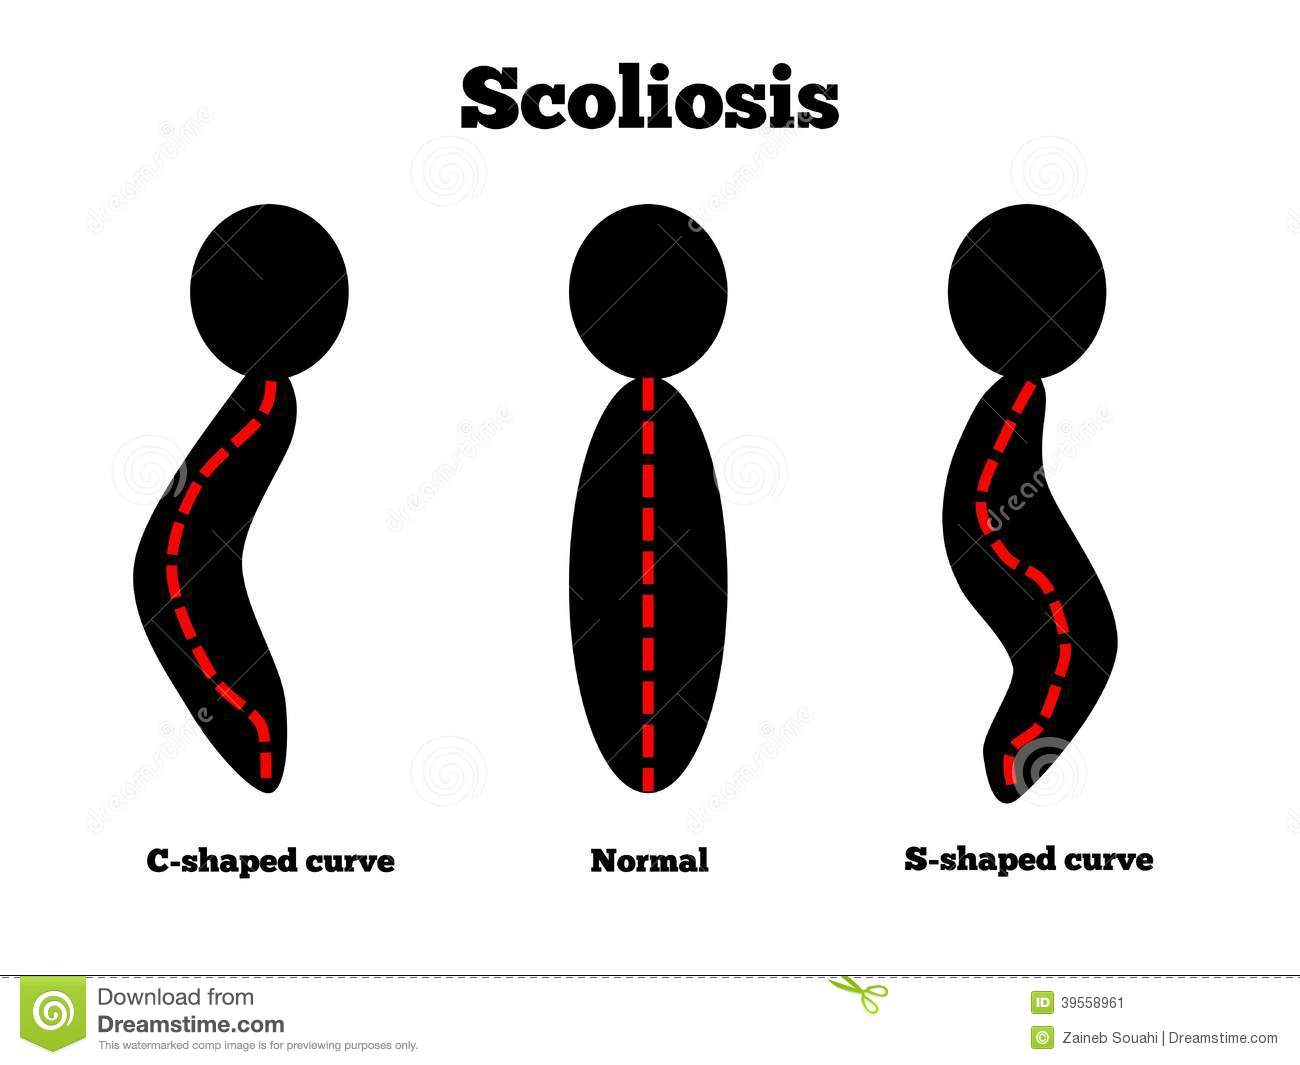 Different types of curvatures caused by scoliosis.